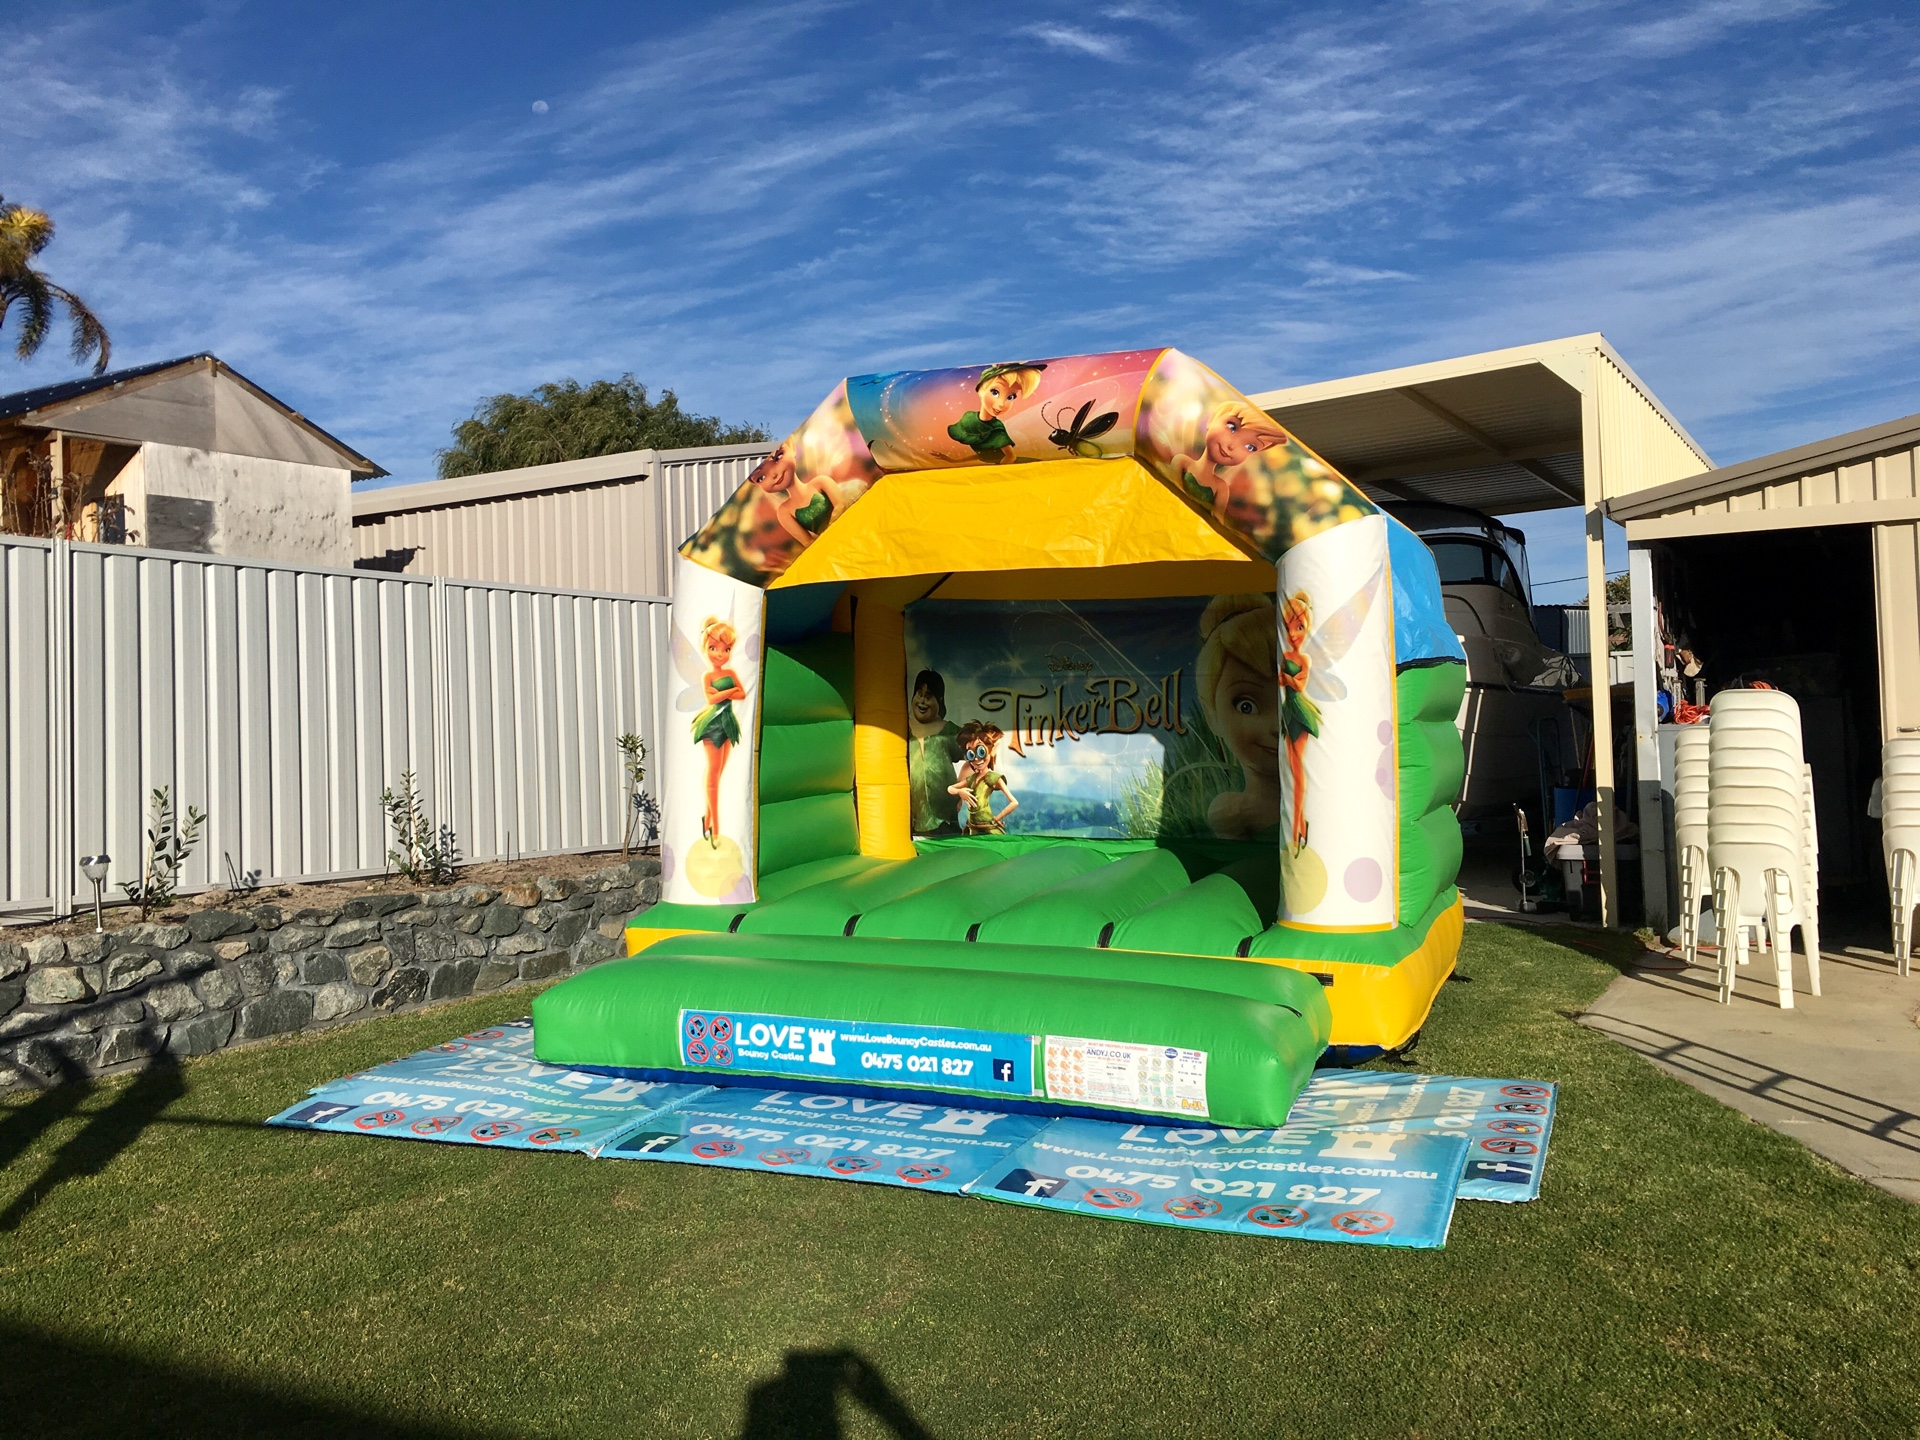 Copy of Tinkerbell Jumping Castle Hired Out In Perth, Western Australia